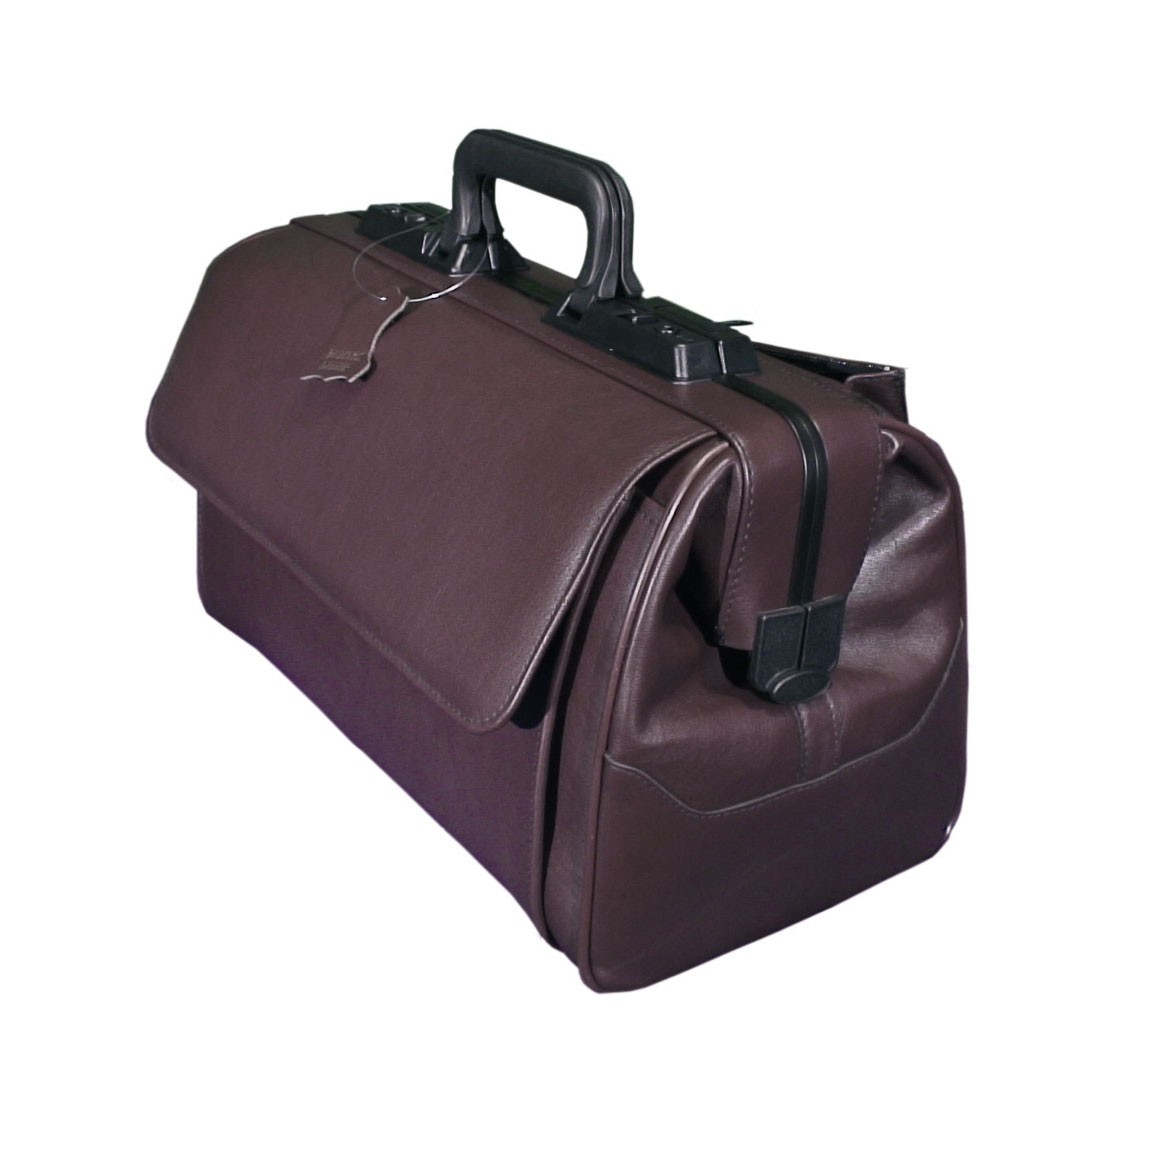 Rusticana case in Burgundy Cowhide - small - 2 outside pockets & Shoulder Strap